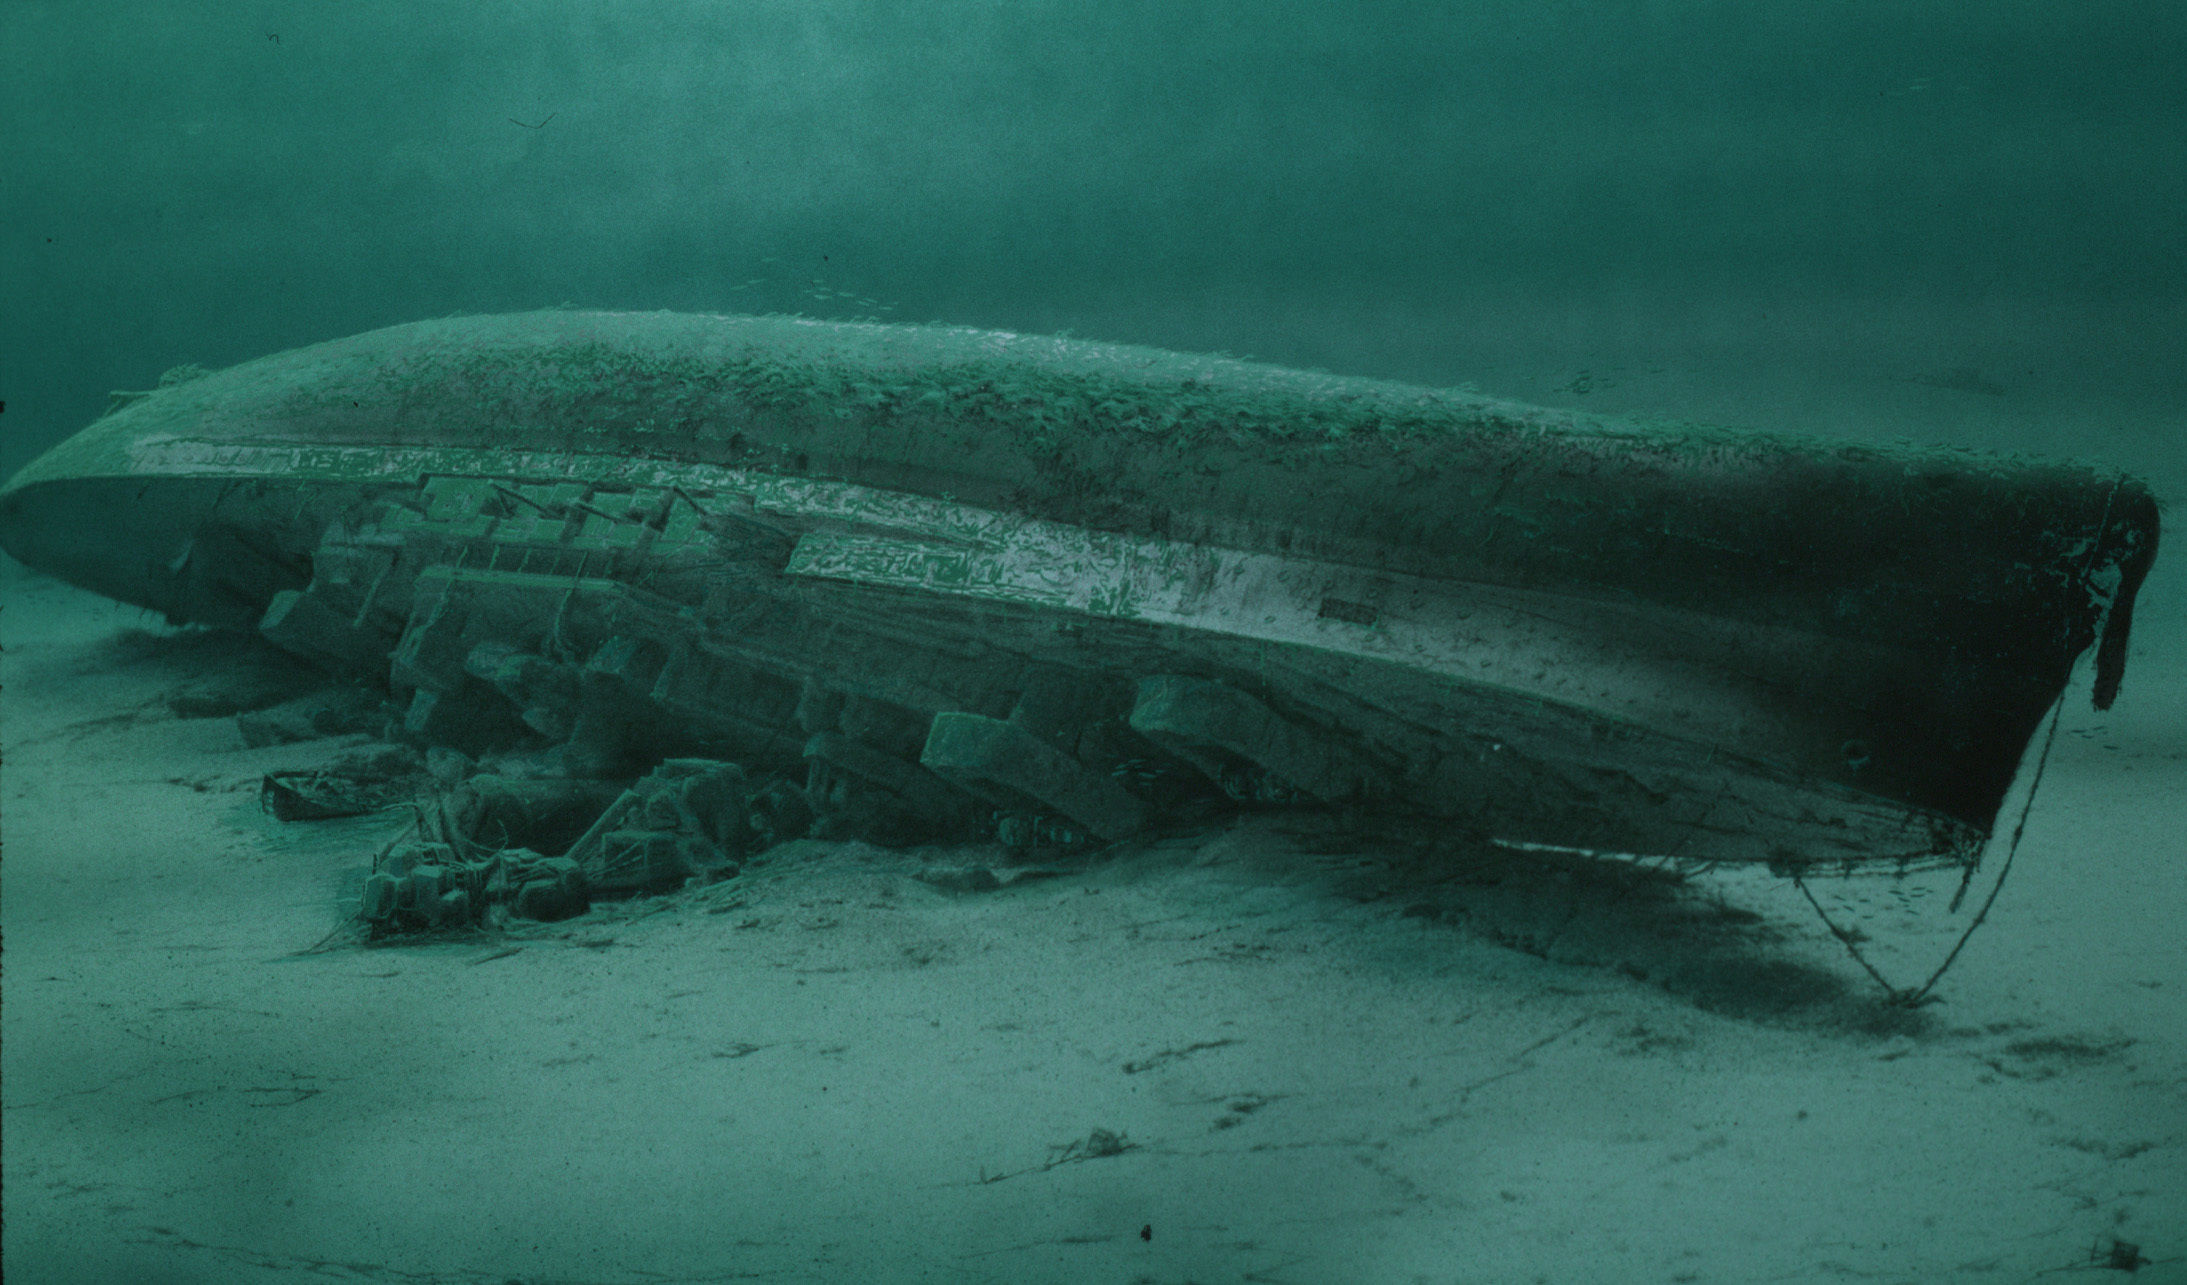 HMS Royal Oak on the Scapa Flow seabed